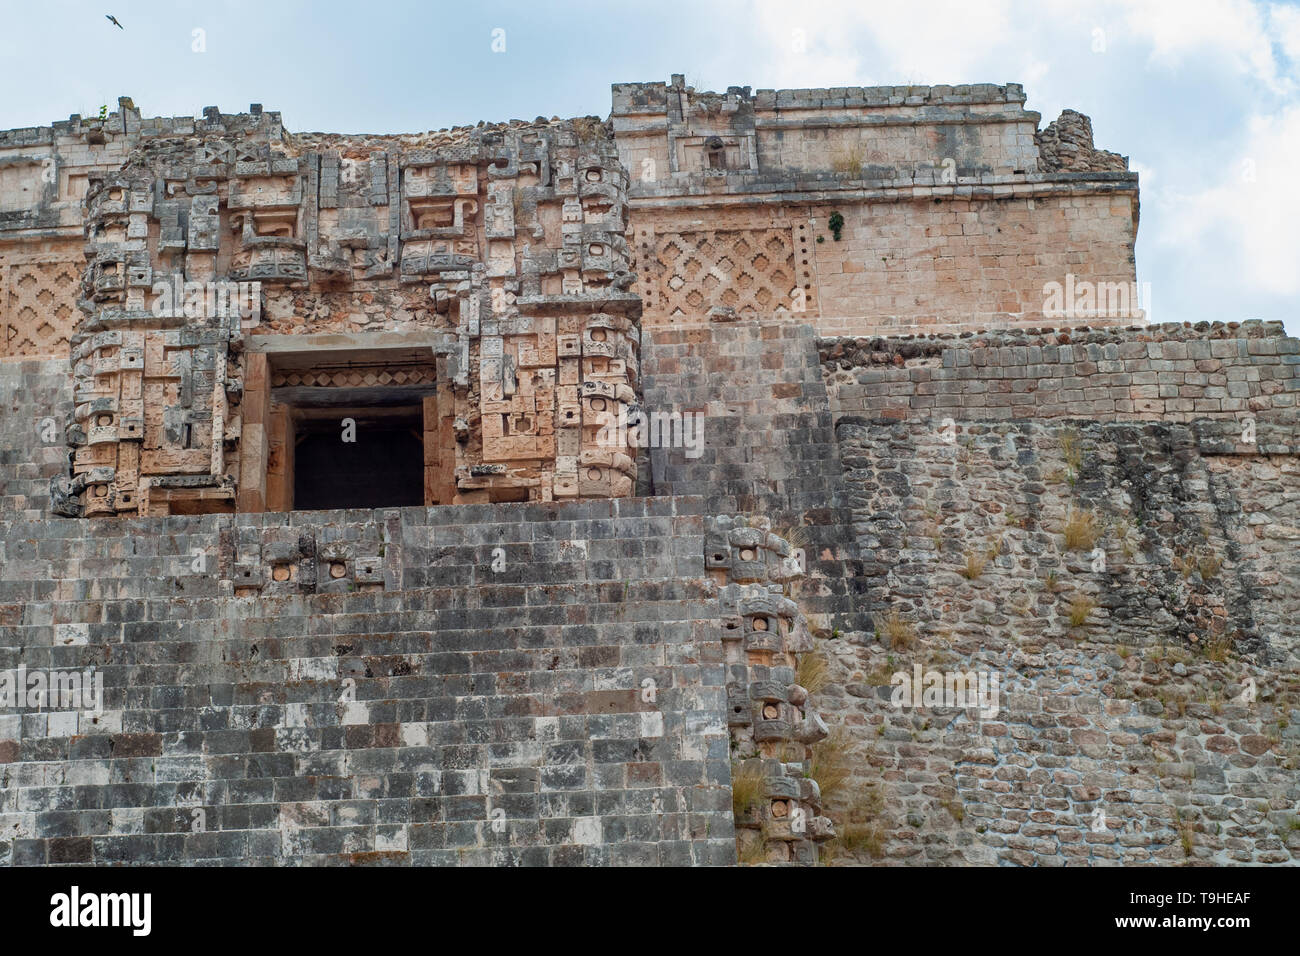 Details of a Mayan temple, of the Ek Balam archaeological area, on the Yucatan peninsula - Stock Image